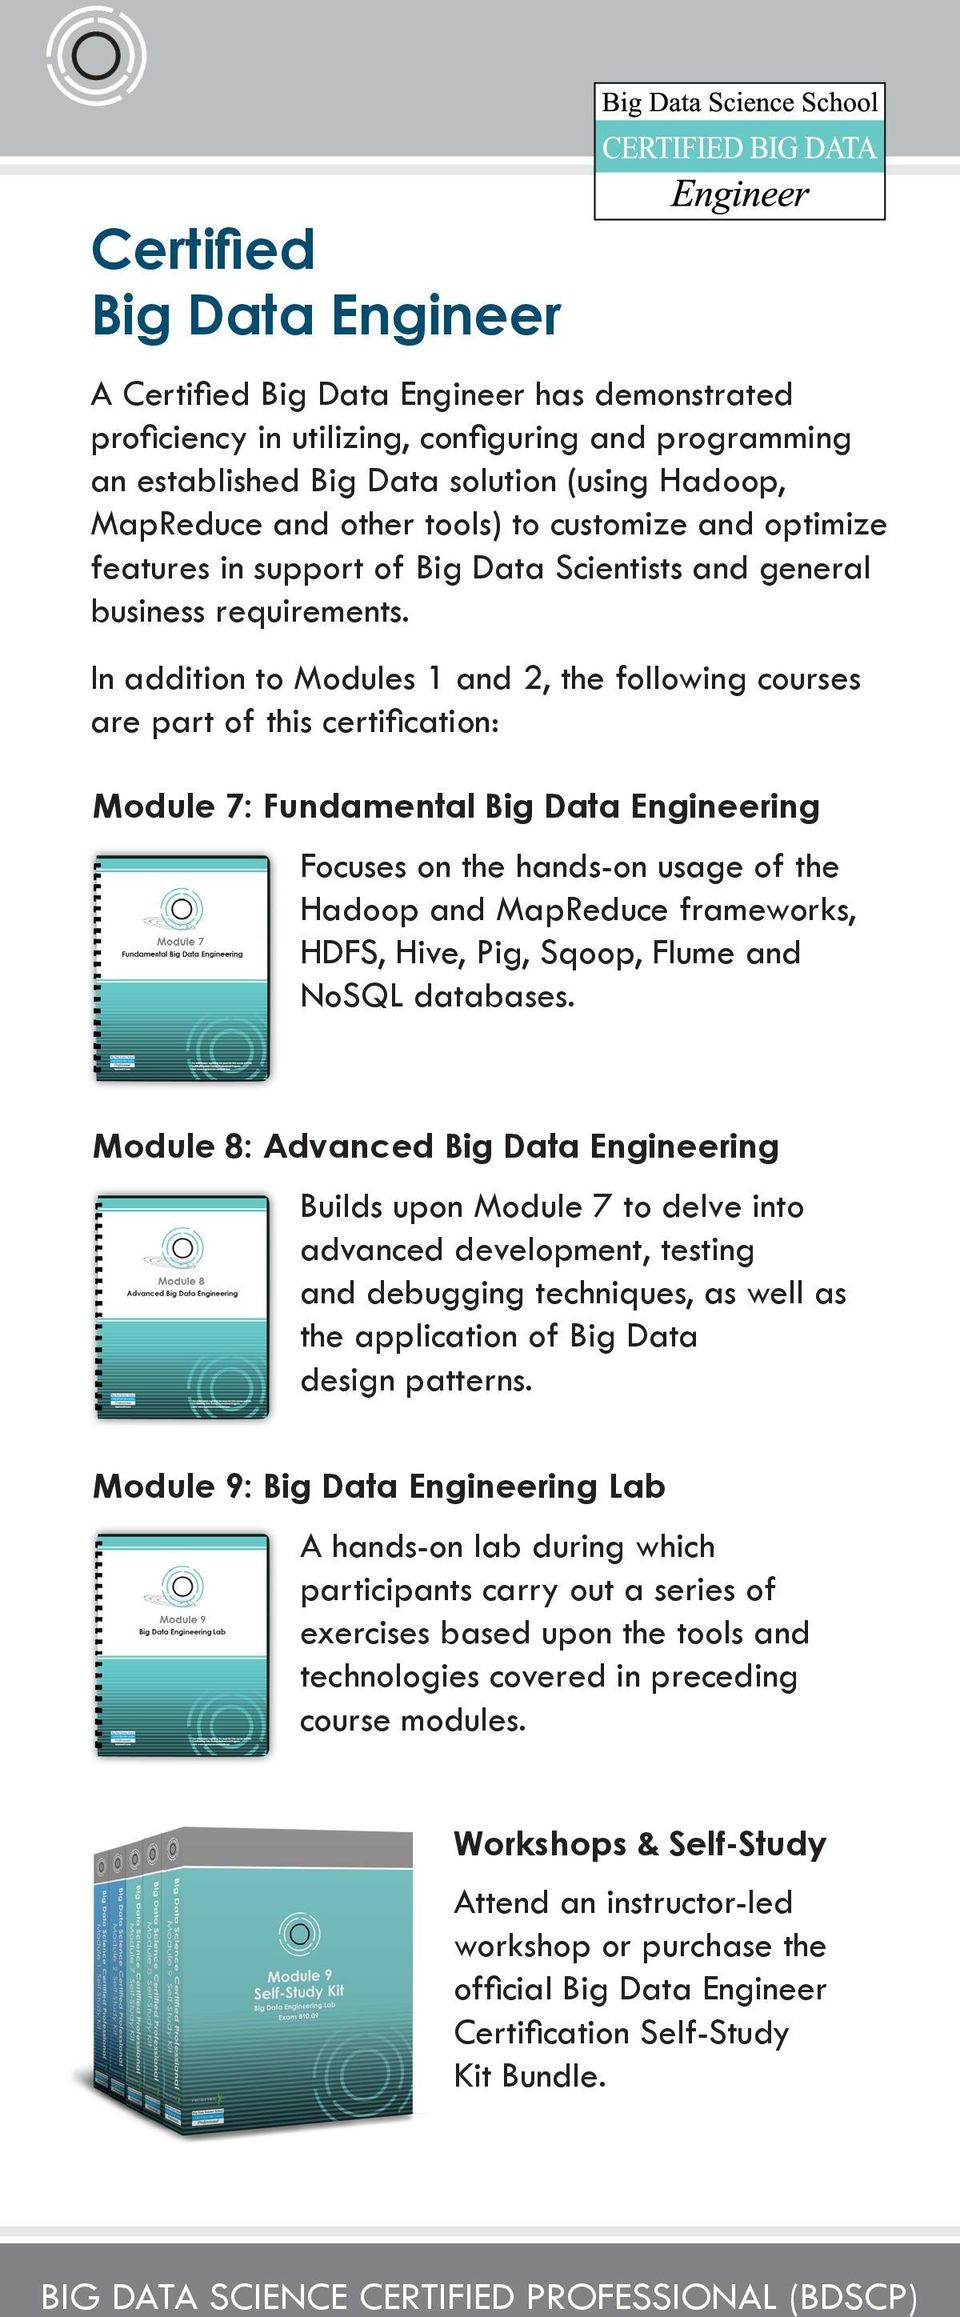 In addition to Modules 1 and 2, the following courses are part of this certification: Module 7: Fundamental Big Data Engineering Focuses on the hands-on usage of the Hadoop and MapReduce frameworks,